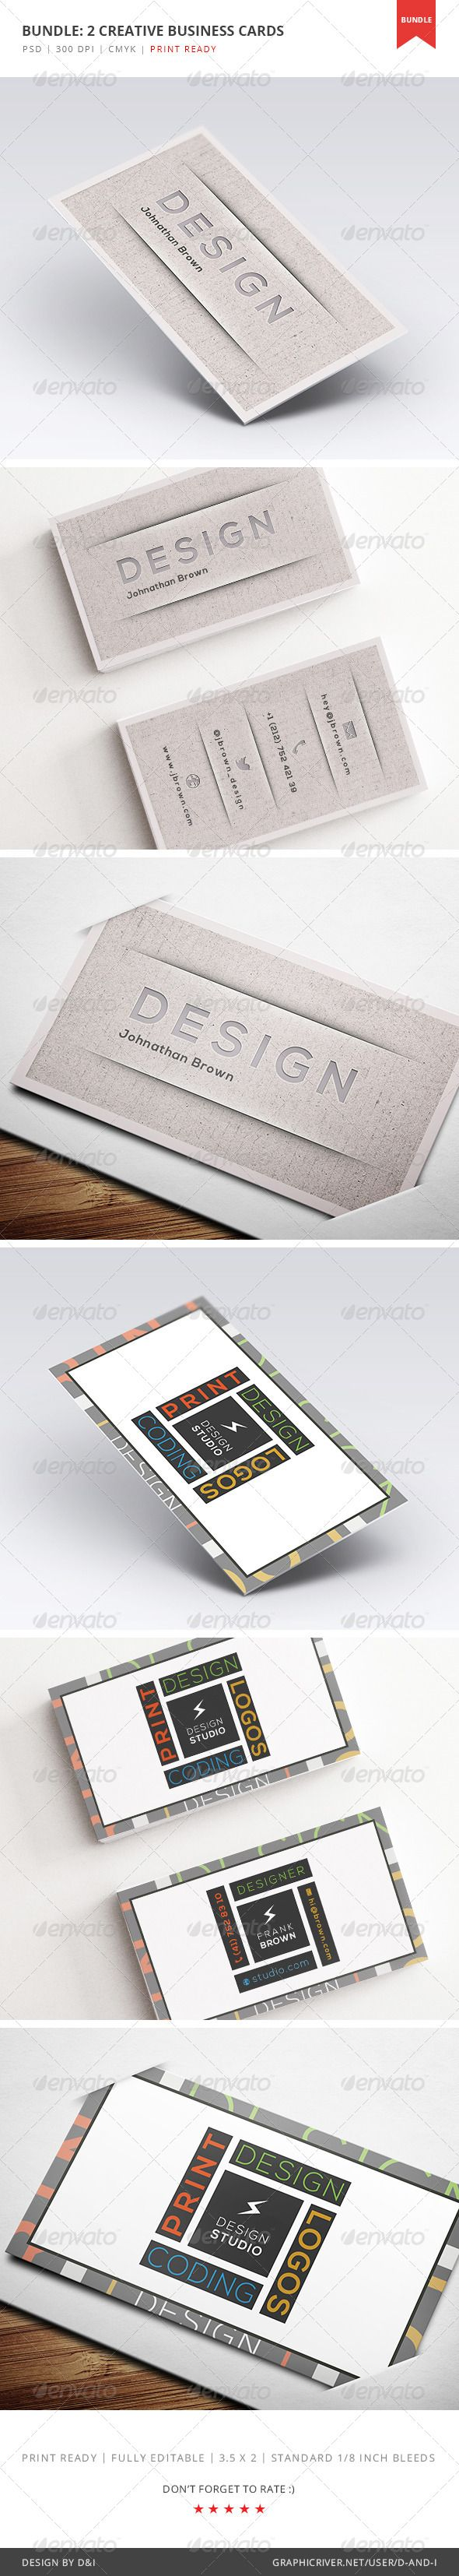 106 best print templates images on pinterest